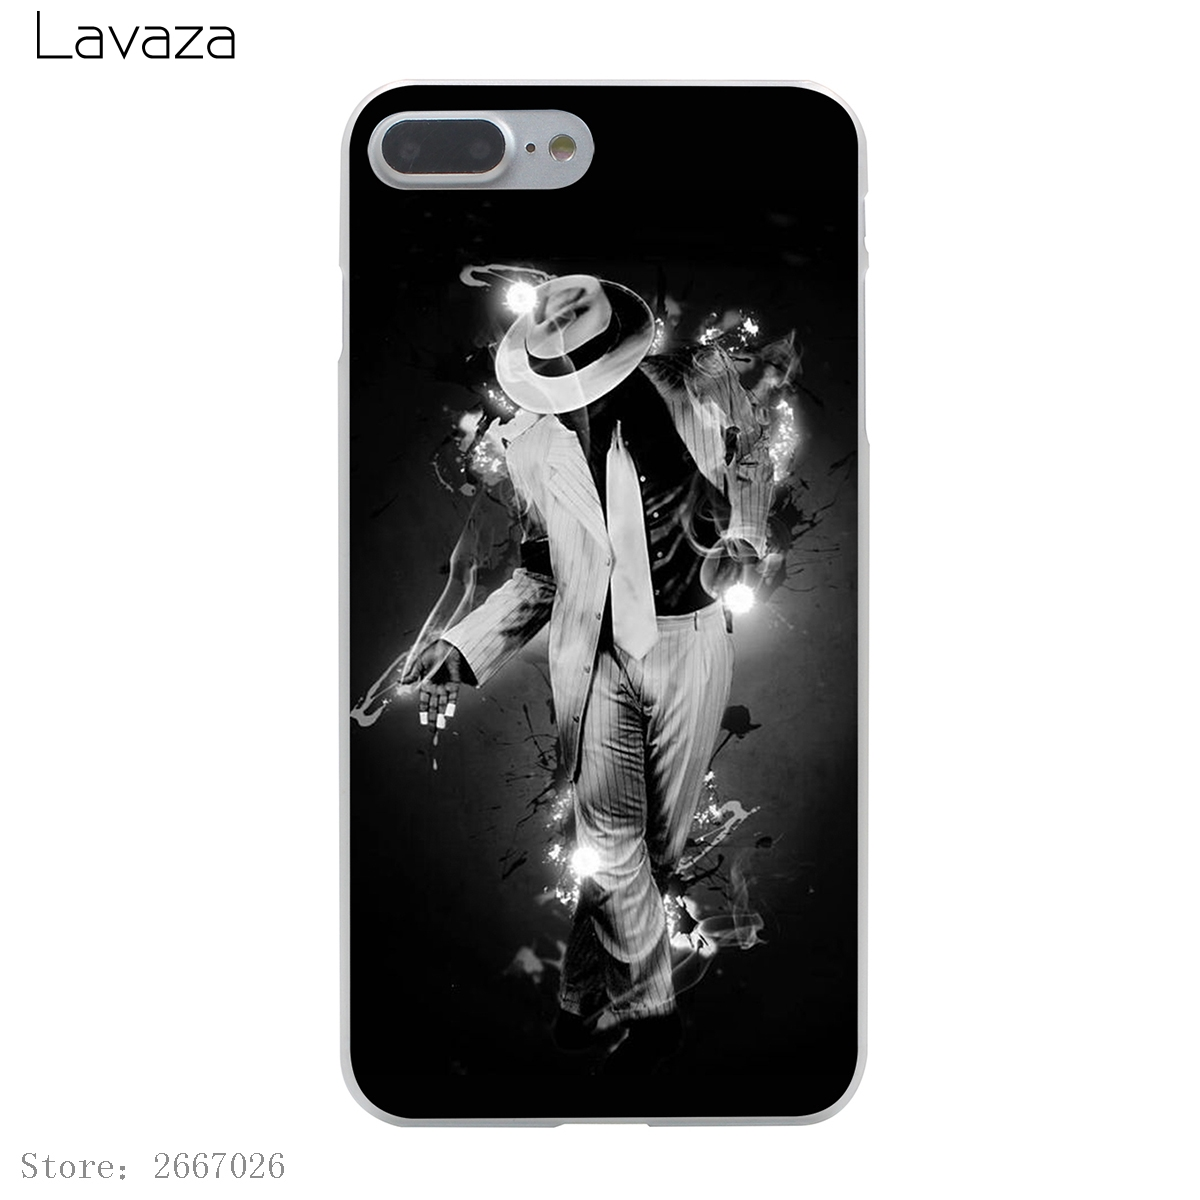 case for iphone Picture - More Detailed Picture about Lavaza michael jackson dance Case for